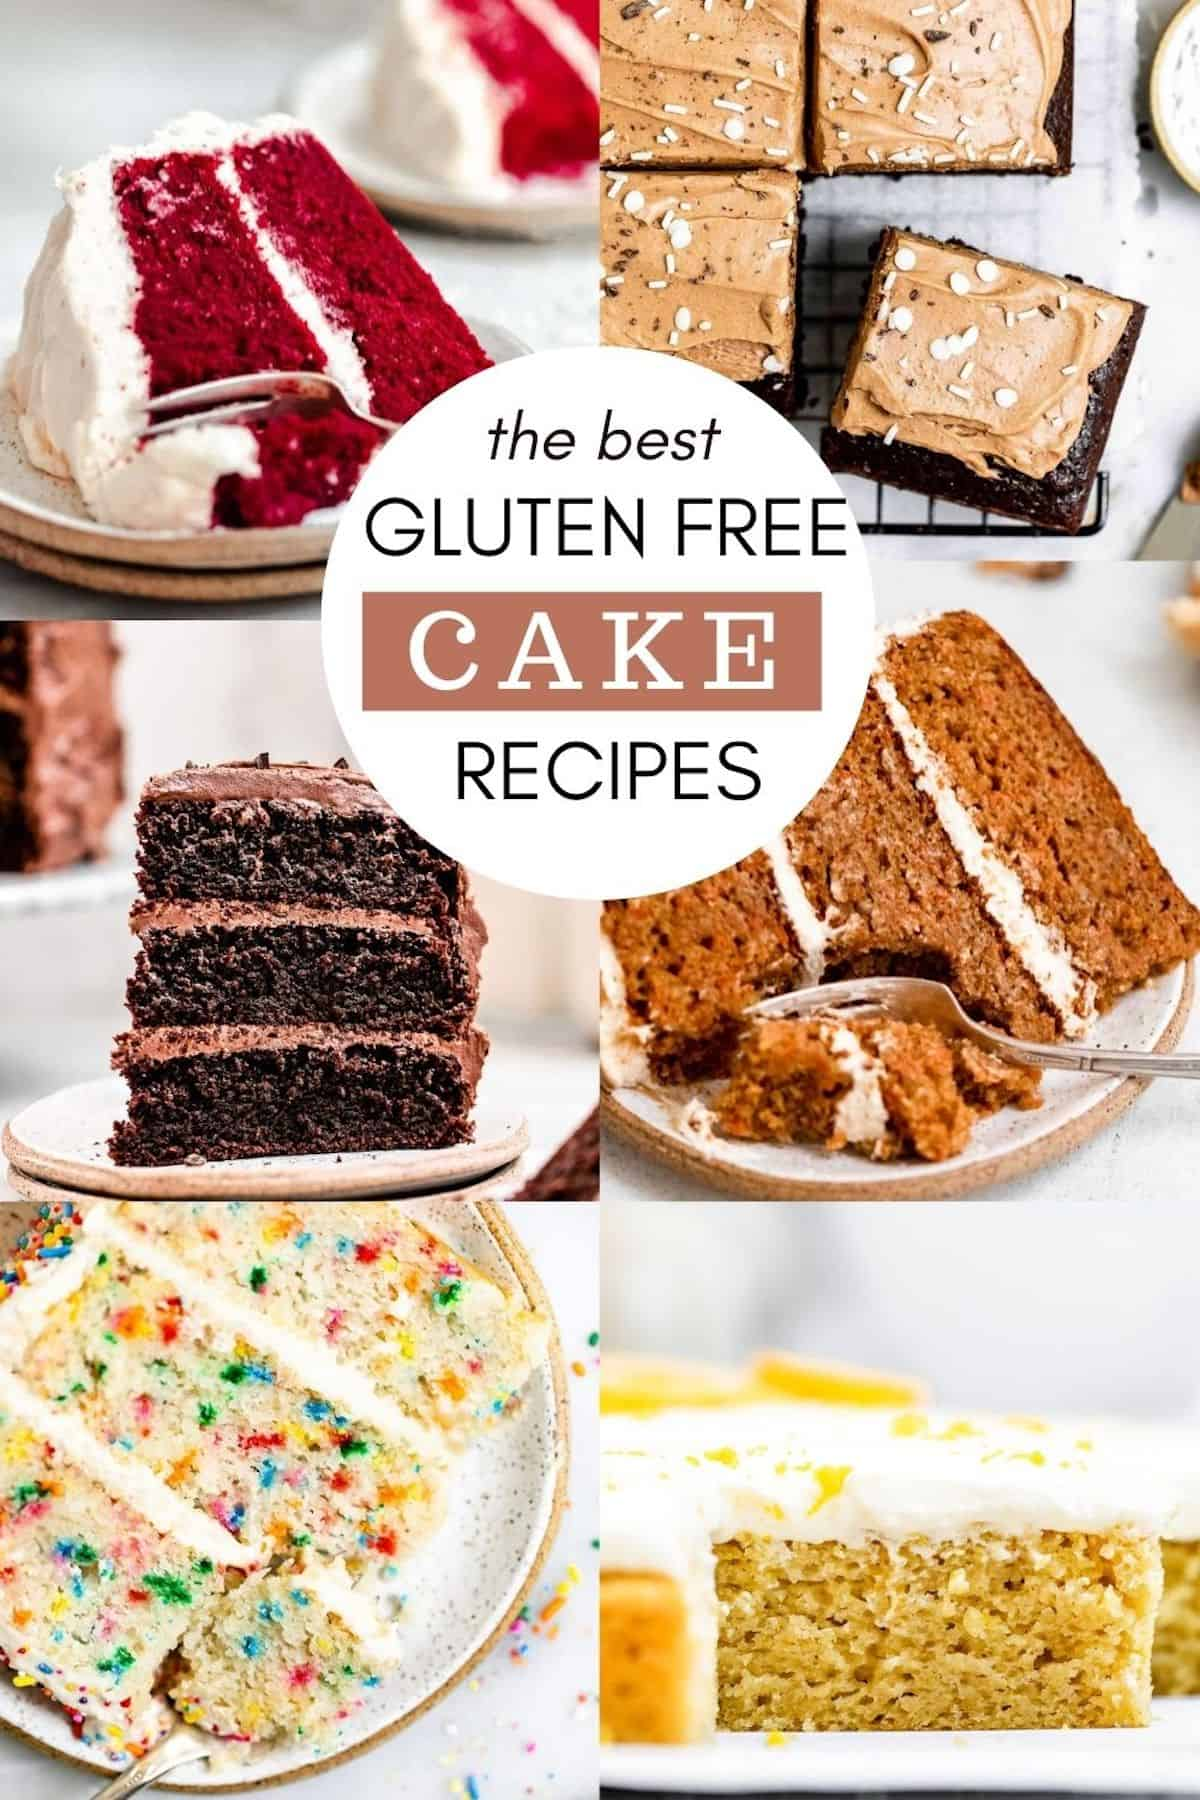 six image collage showing gluten free cakes